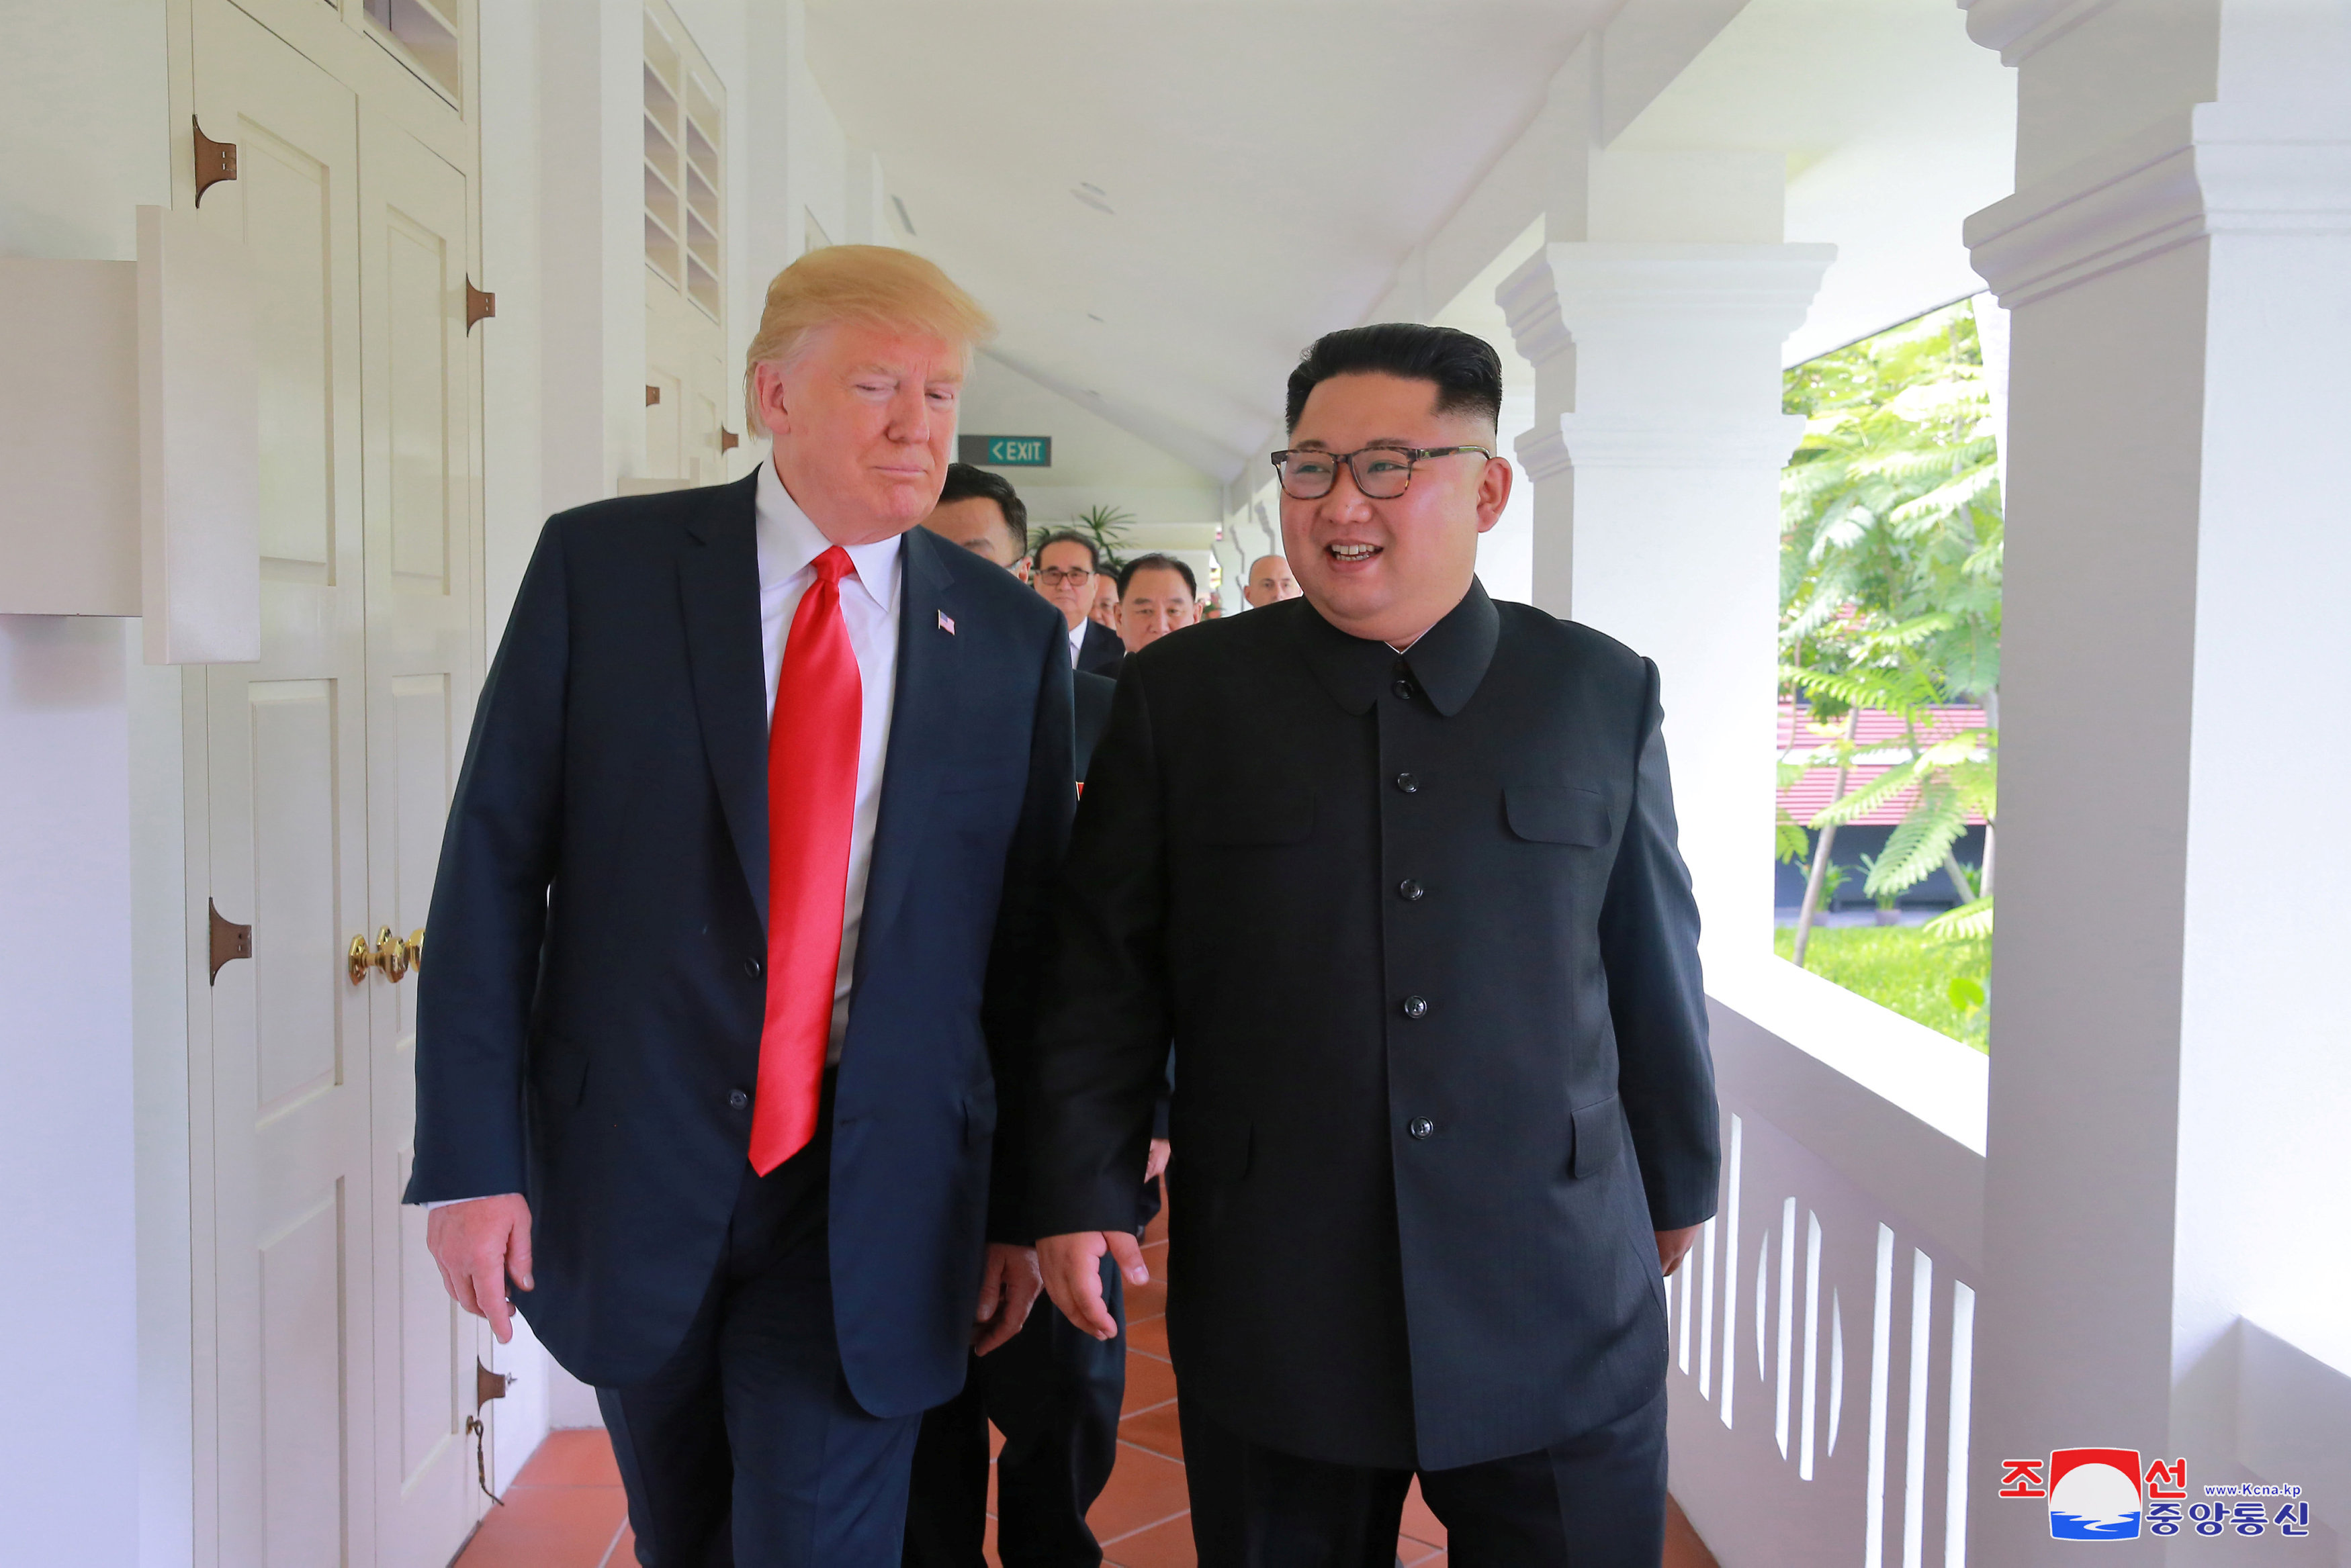 US President Donald Trump walks with North Korean leader Kim Jong Un at the Capella Hotel on Sentosa island in Singapore in this picture released on June 12, 2018 by North Korea's Korean Central News Agency. Credit: KCNA via Reuters